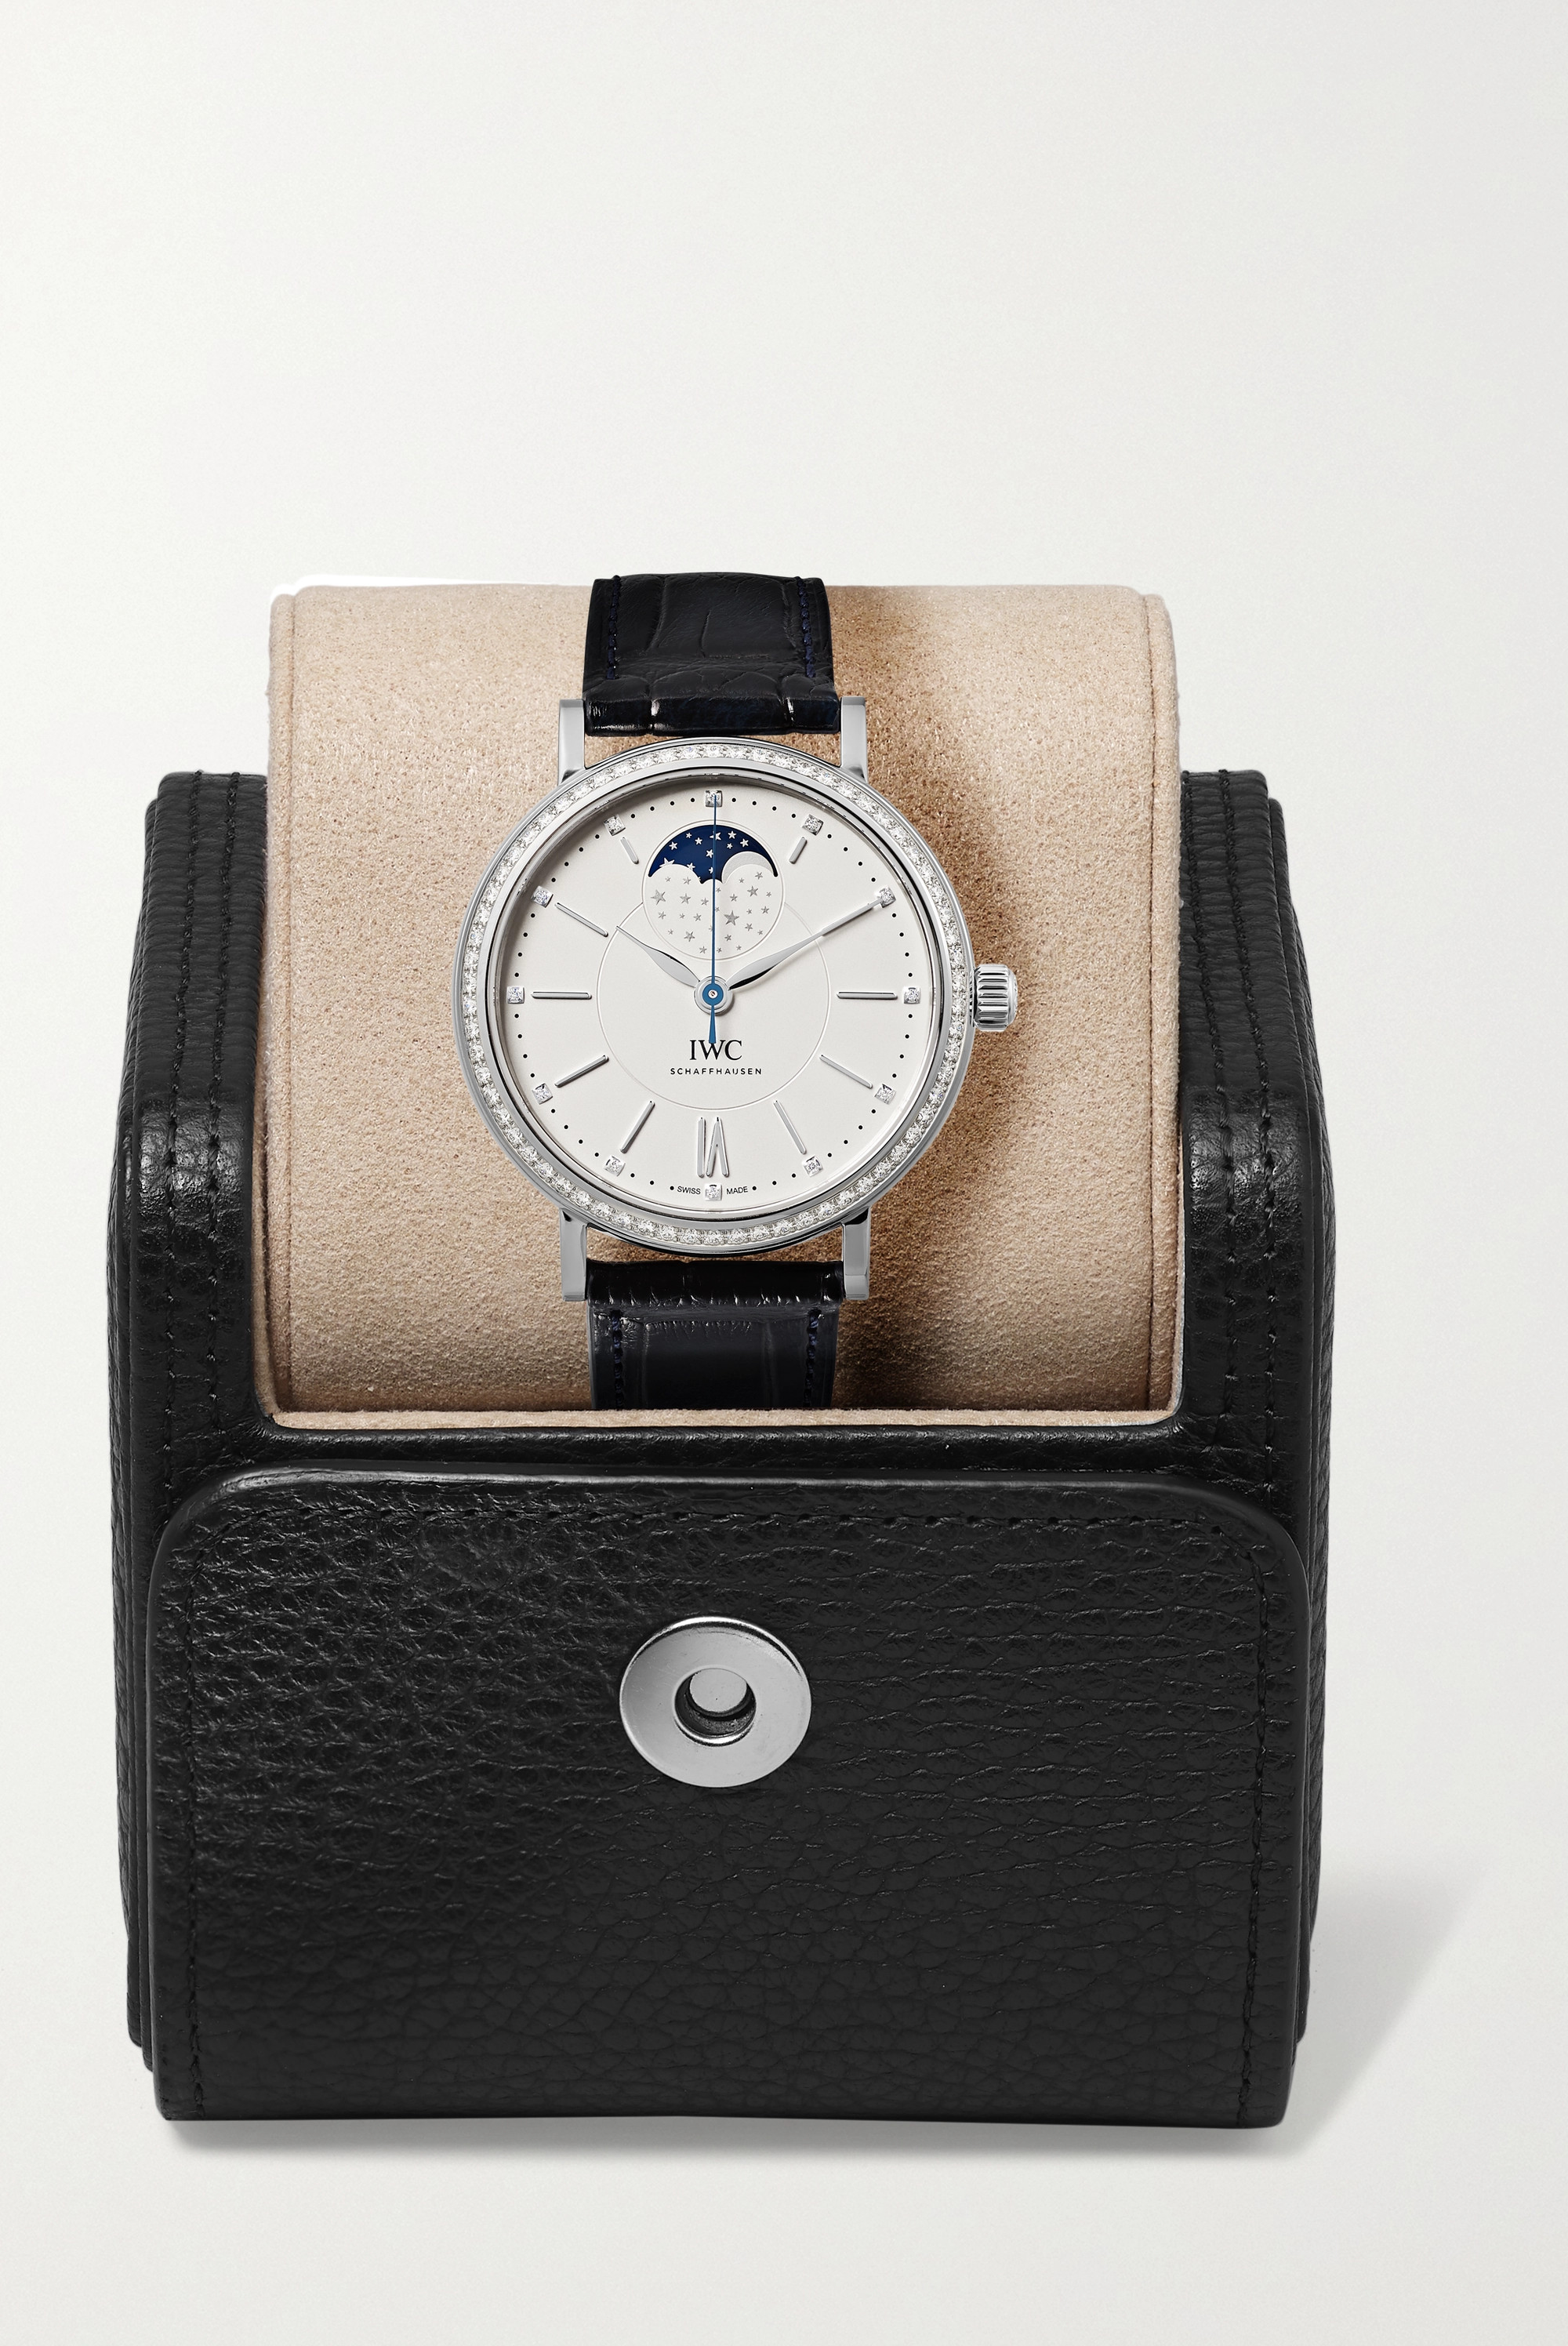 IWC SCHAFFHAUSEN Portofino Automatic Moon Phase 37mm stainless steel, alligator and diamond watch